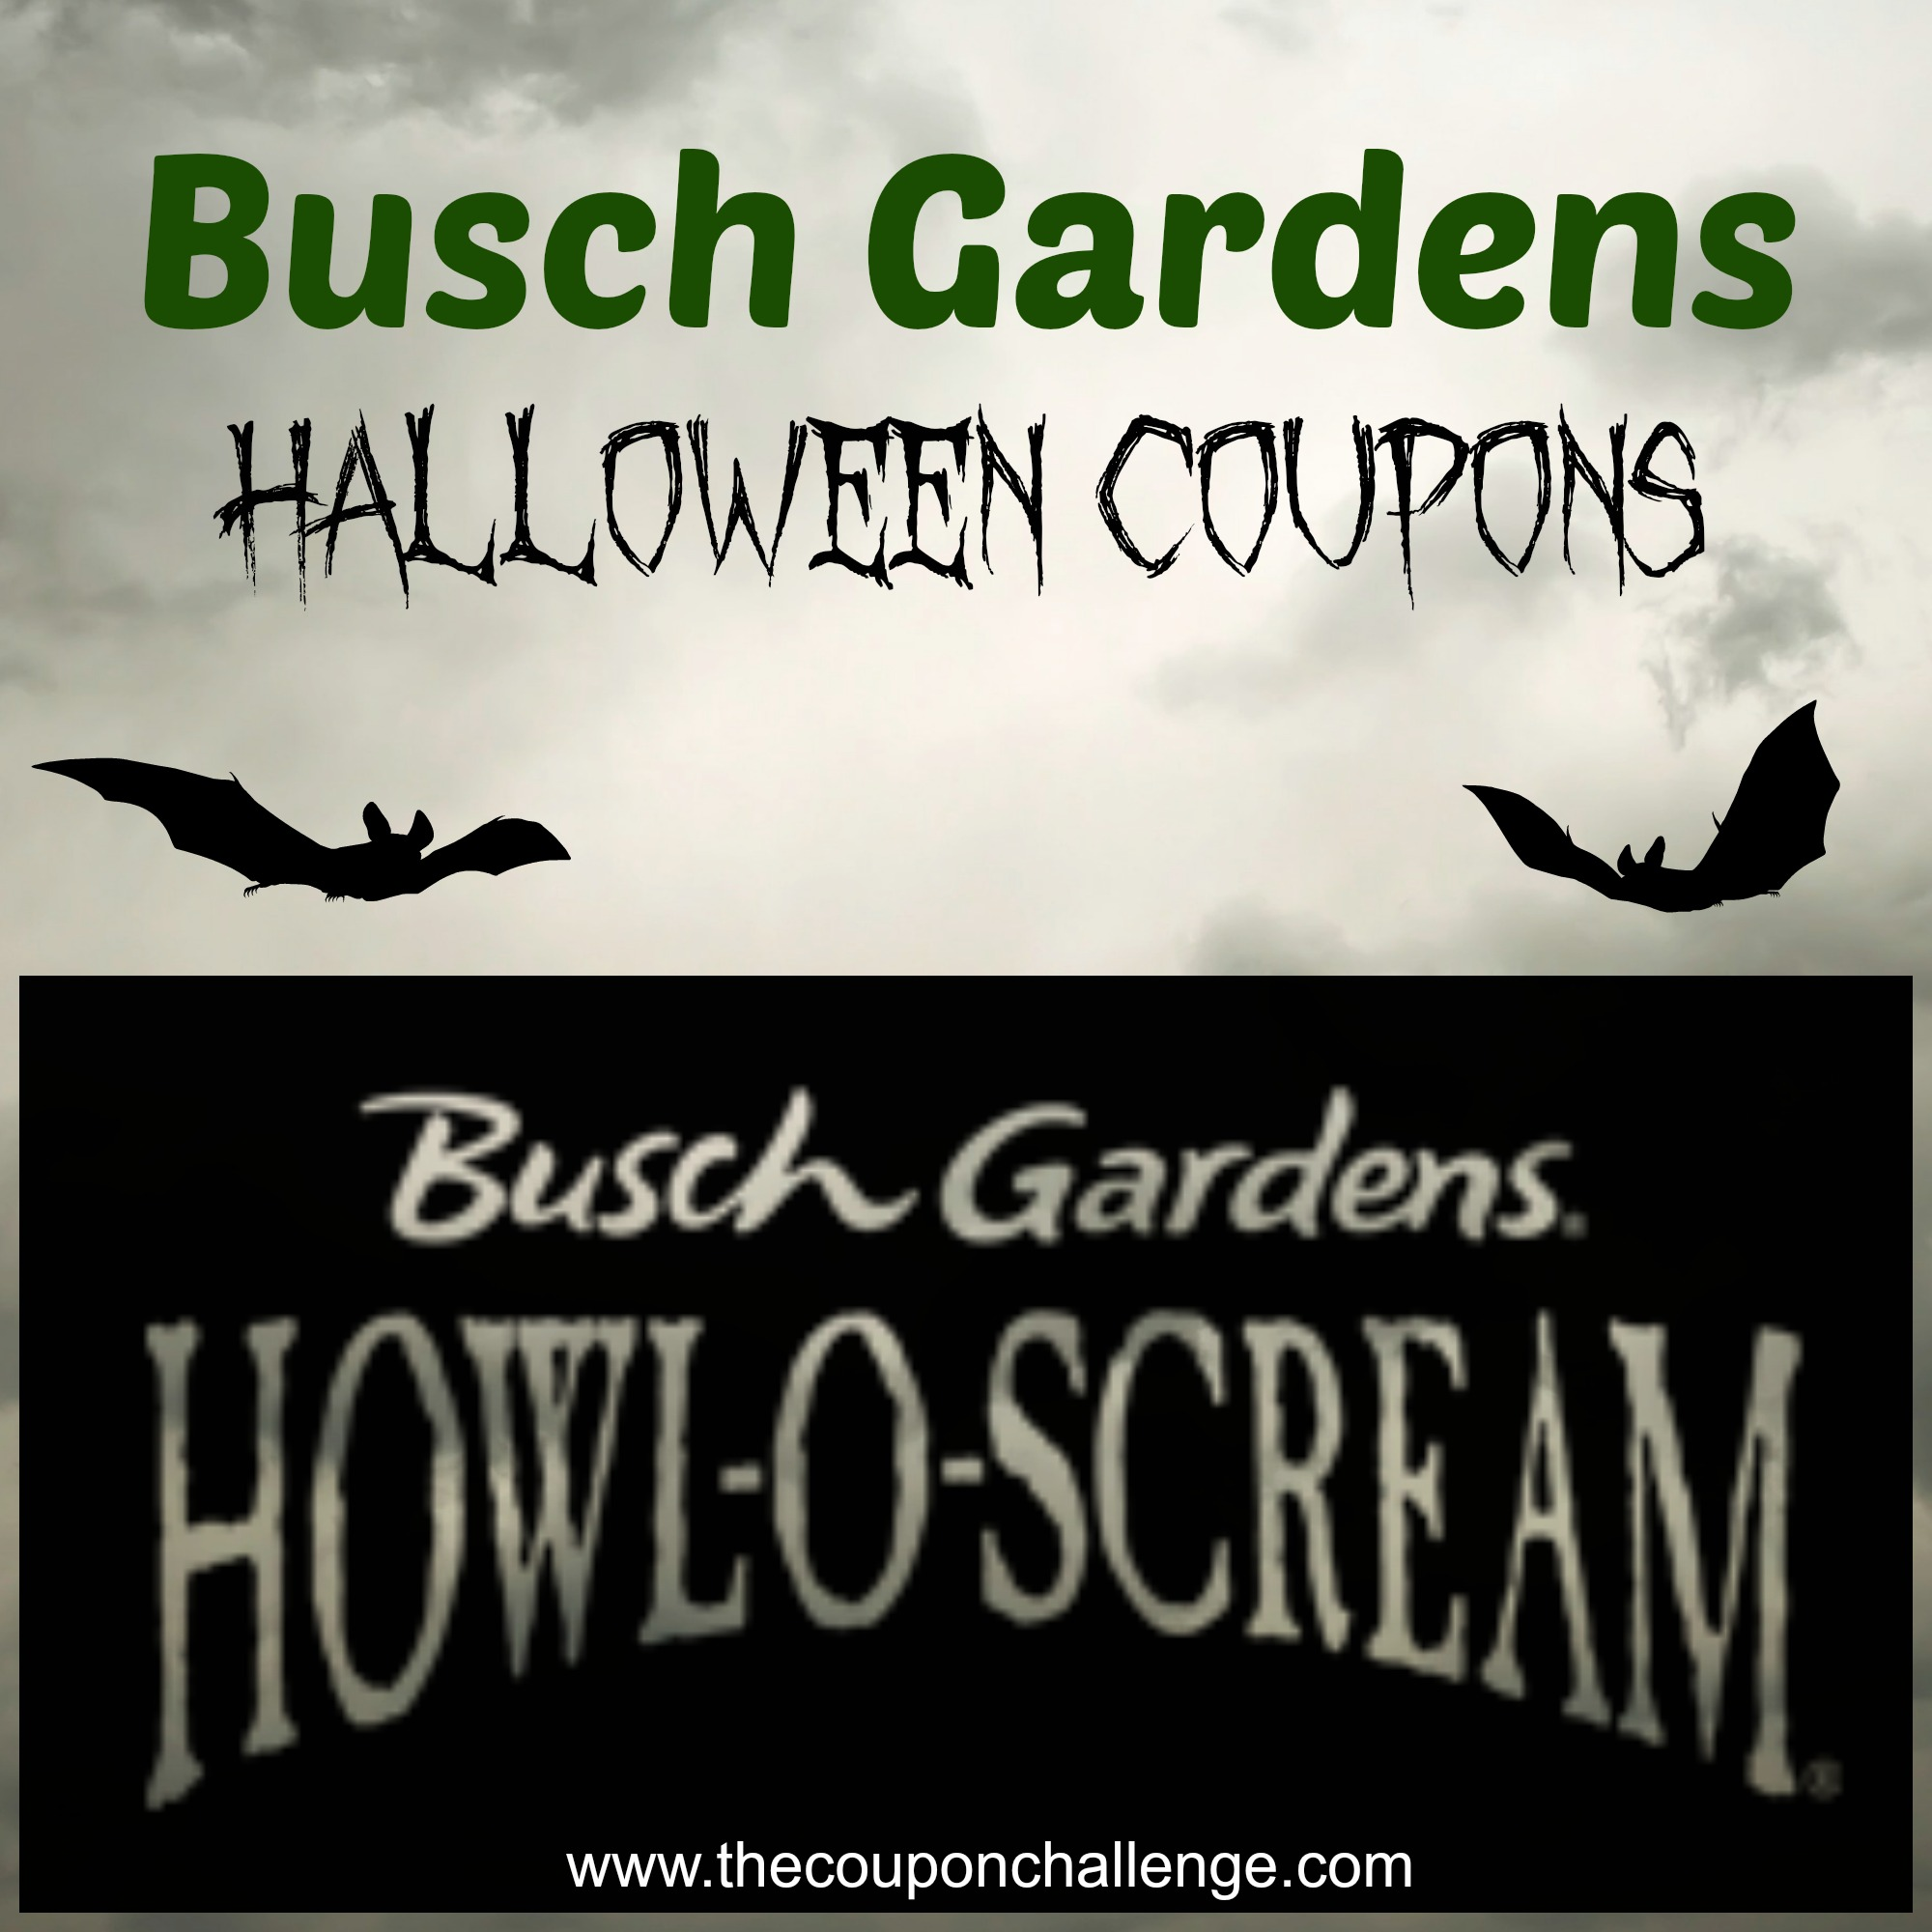 Gardens Halloween Coupons